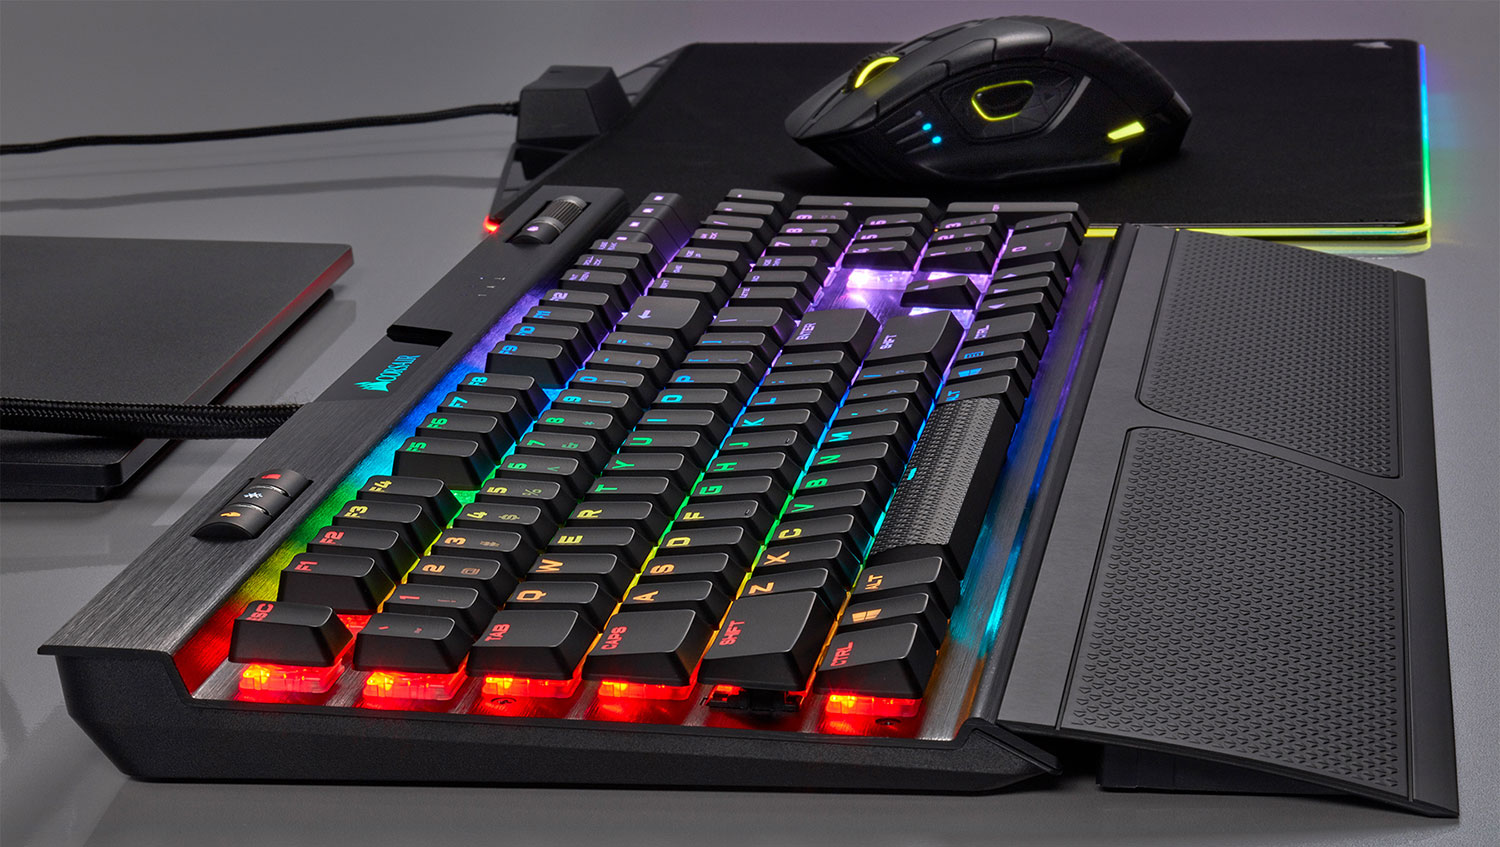 Corsair's new mechanical keyboards use low profile keys to prevent